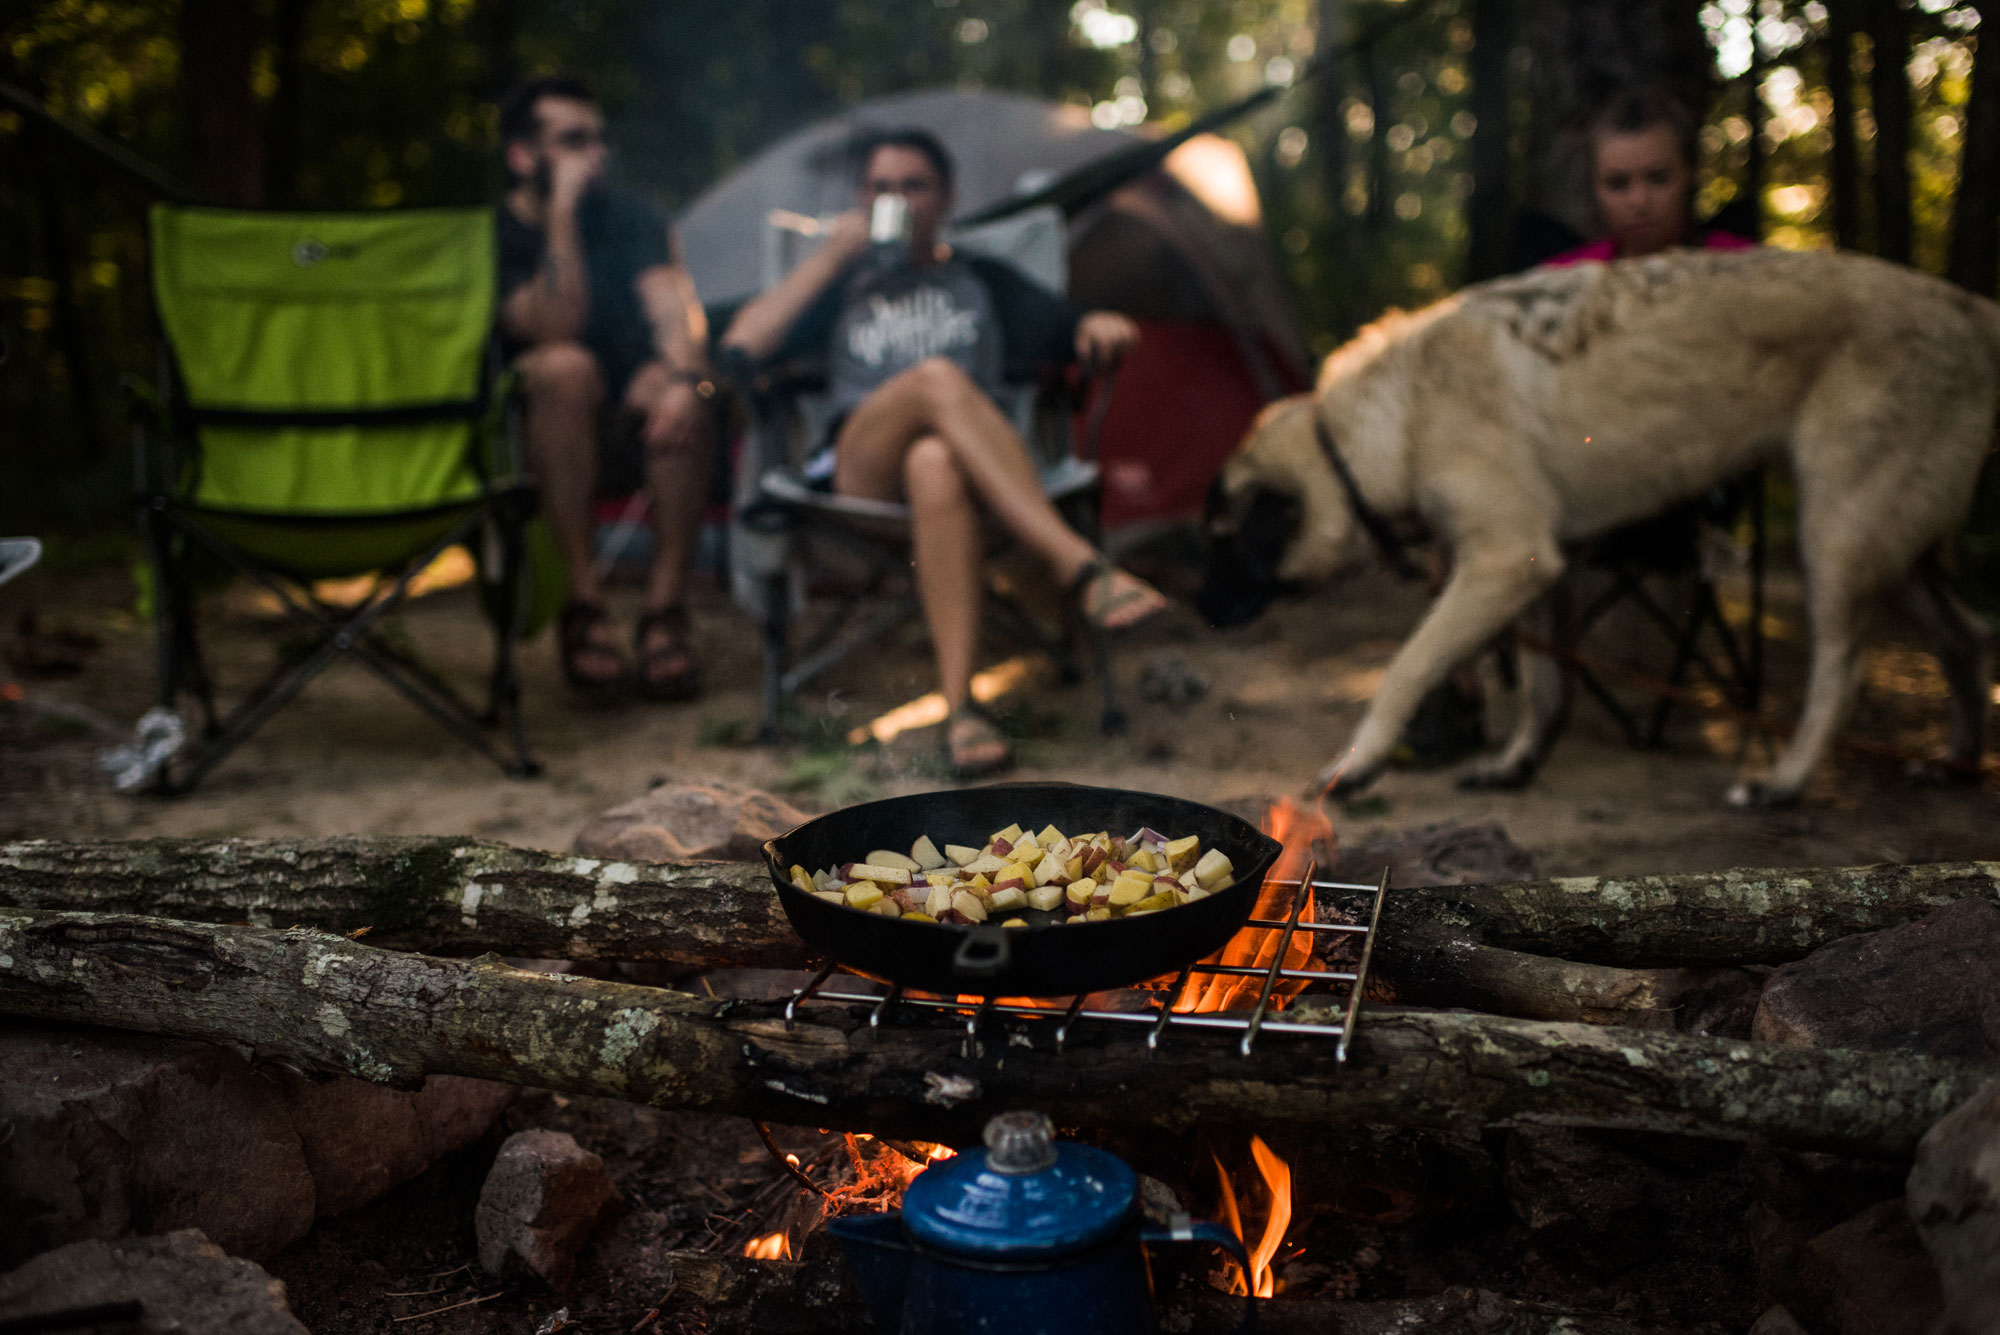 TaraShupe_Photography_SamsThrone_Climbing_Arkansas_CampingWithDogs_002.jpg